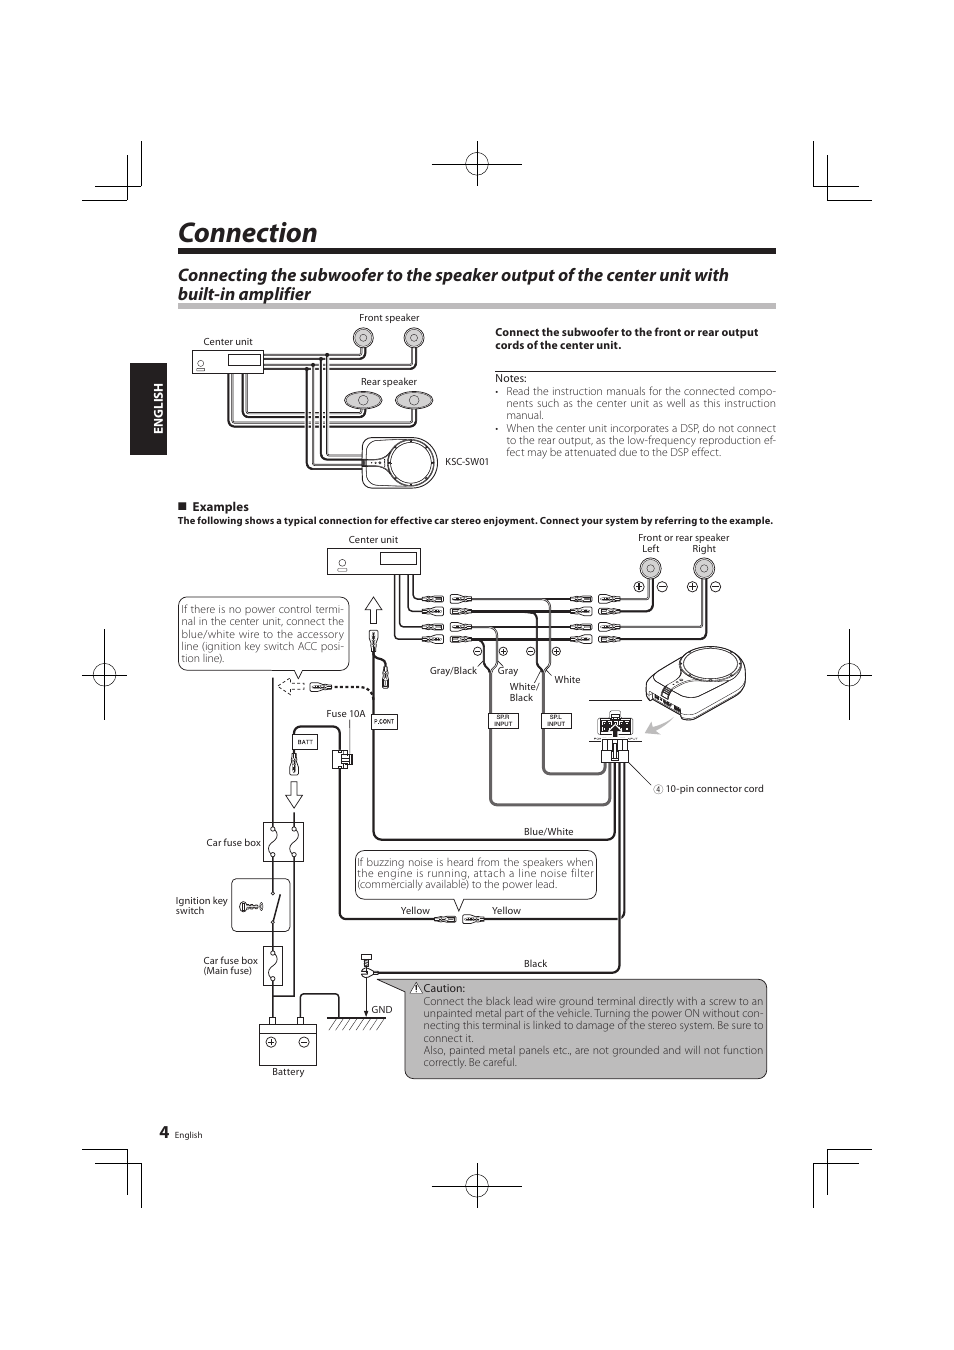 hight resolution of connection kenwood ksc sw01 user manual page 4 7